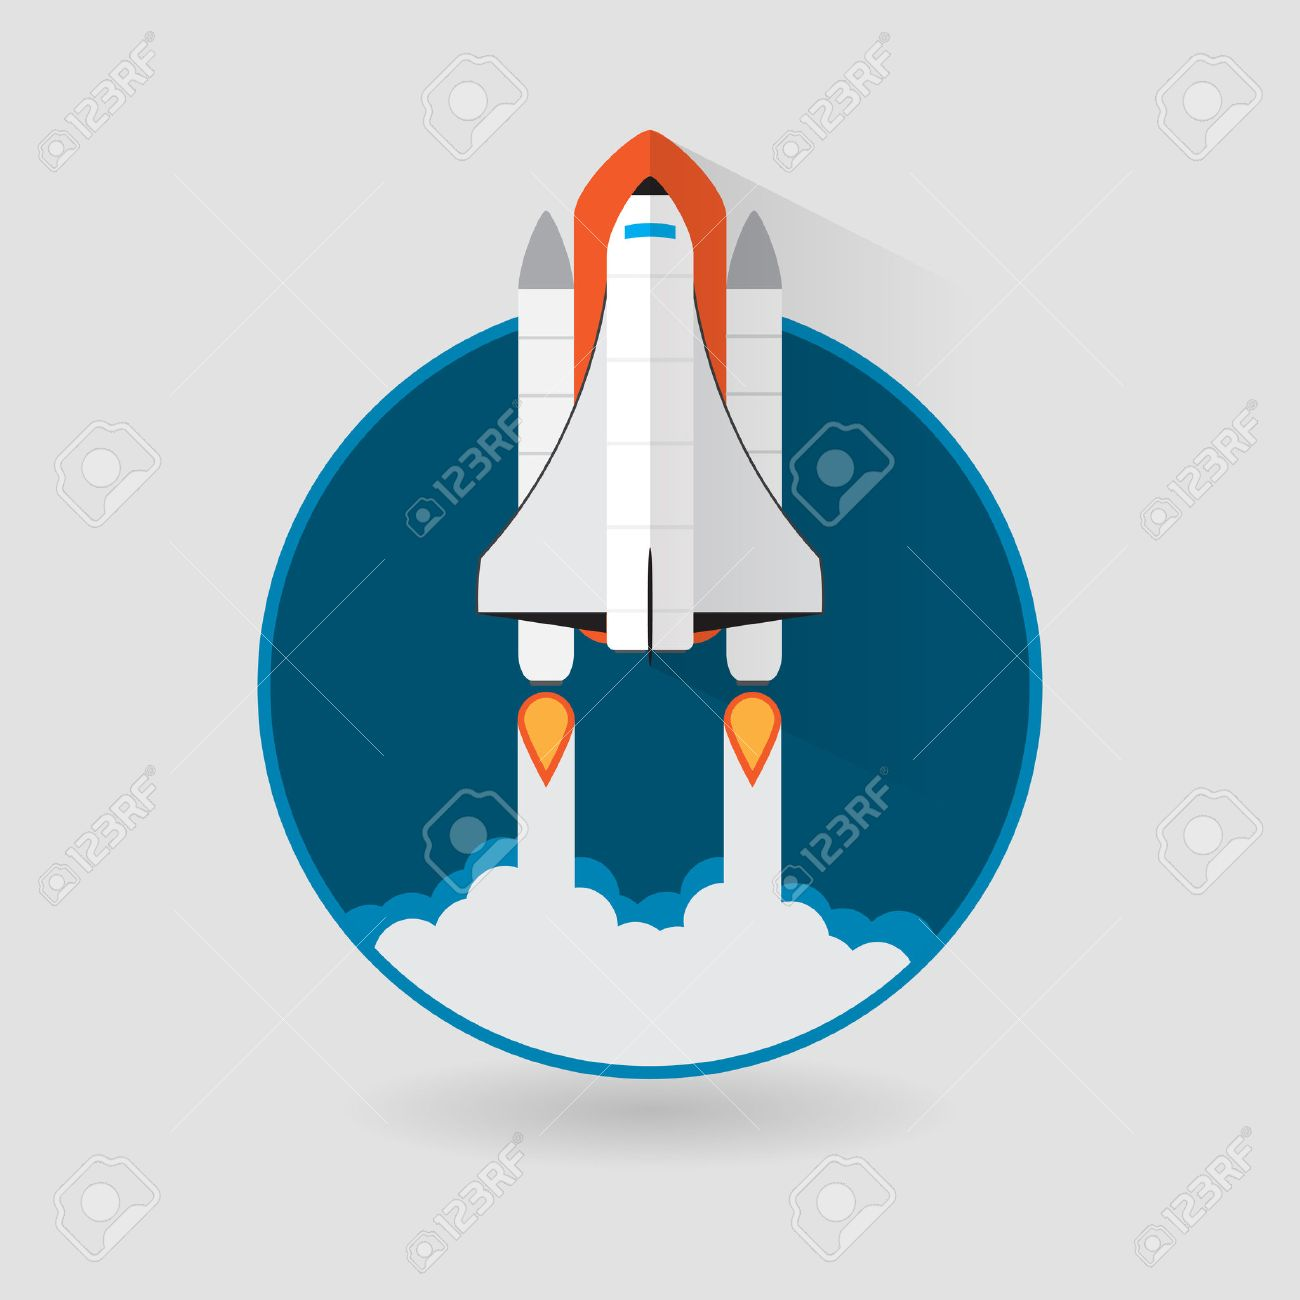 space shuttle launch vector illustration royalty free cliparts rh 123rf com Space Shuttle Outline Space Shuttle in Orbit